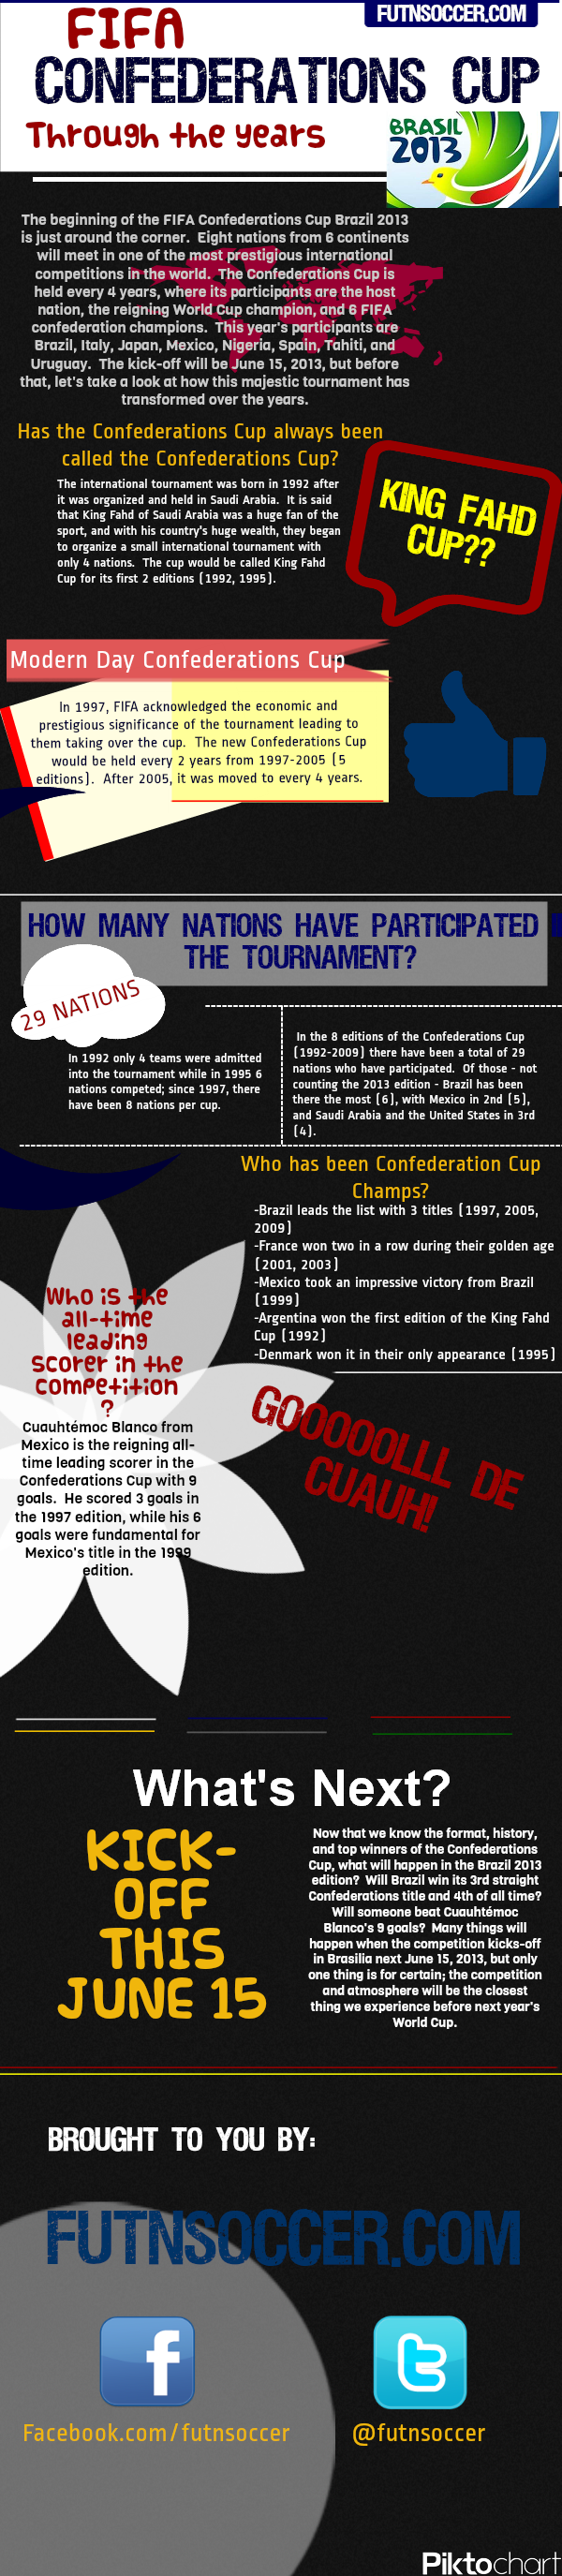 Confederations Cup 2013 Infographic